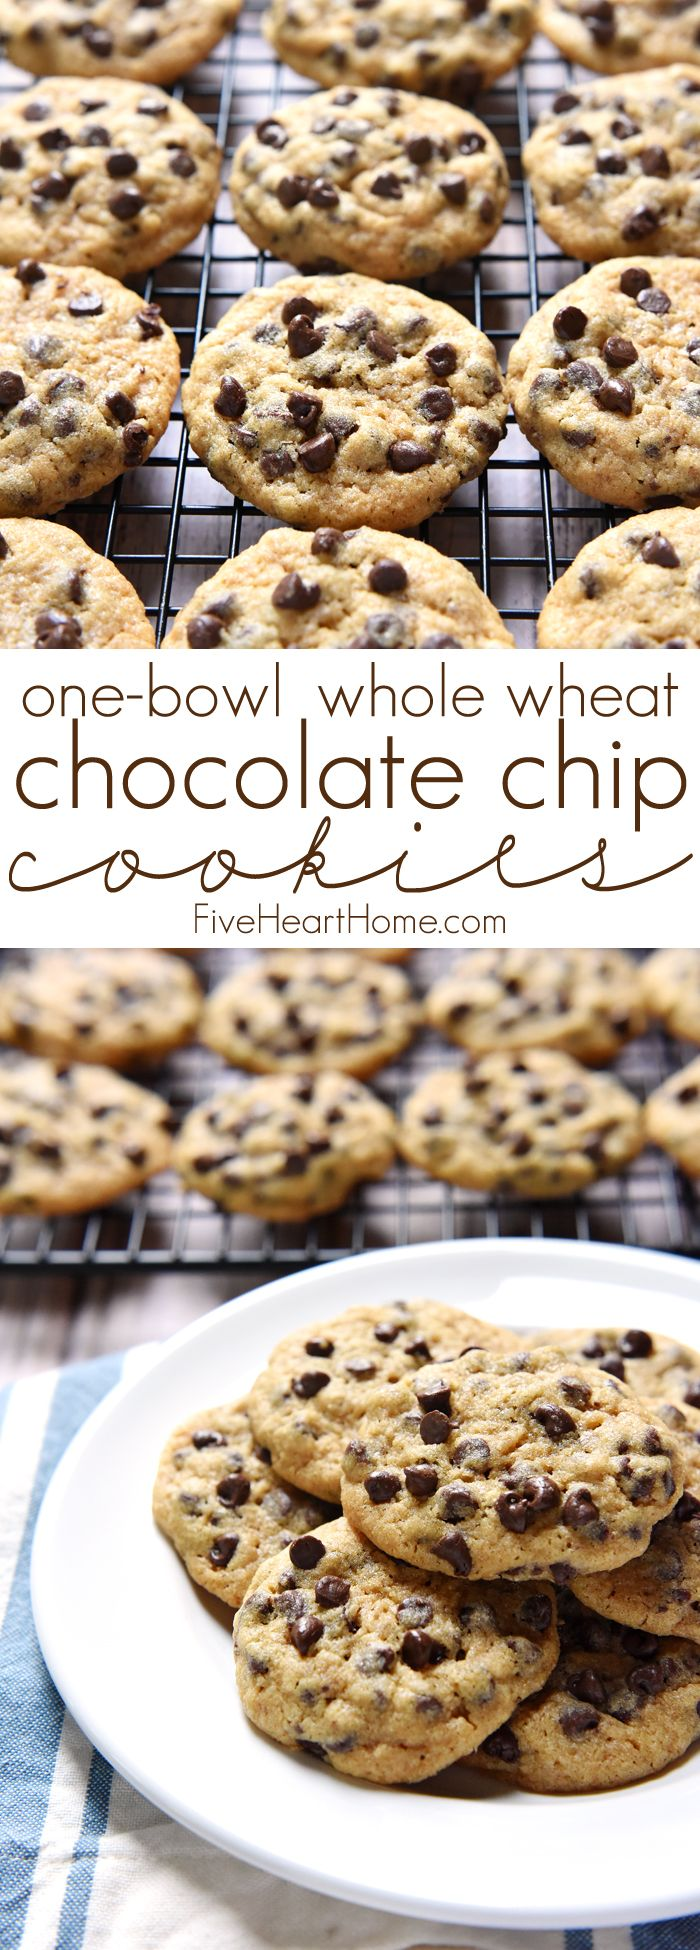 One-Bowl Whole Wheat Chocolate Chip Cookies ~ chewy, delicious, and made with 100% whole wheat flour in just one bowl, there's no need to feel guilty about enjoying an extra cookie...or three! | FiveHeartHome.com